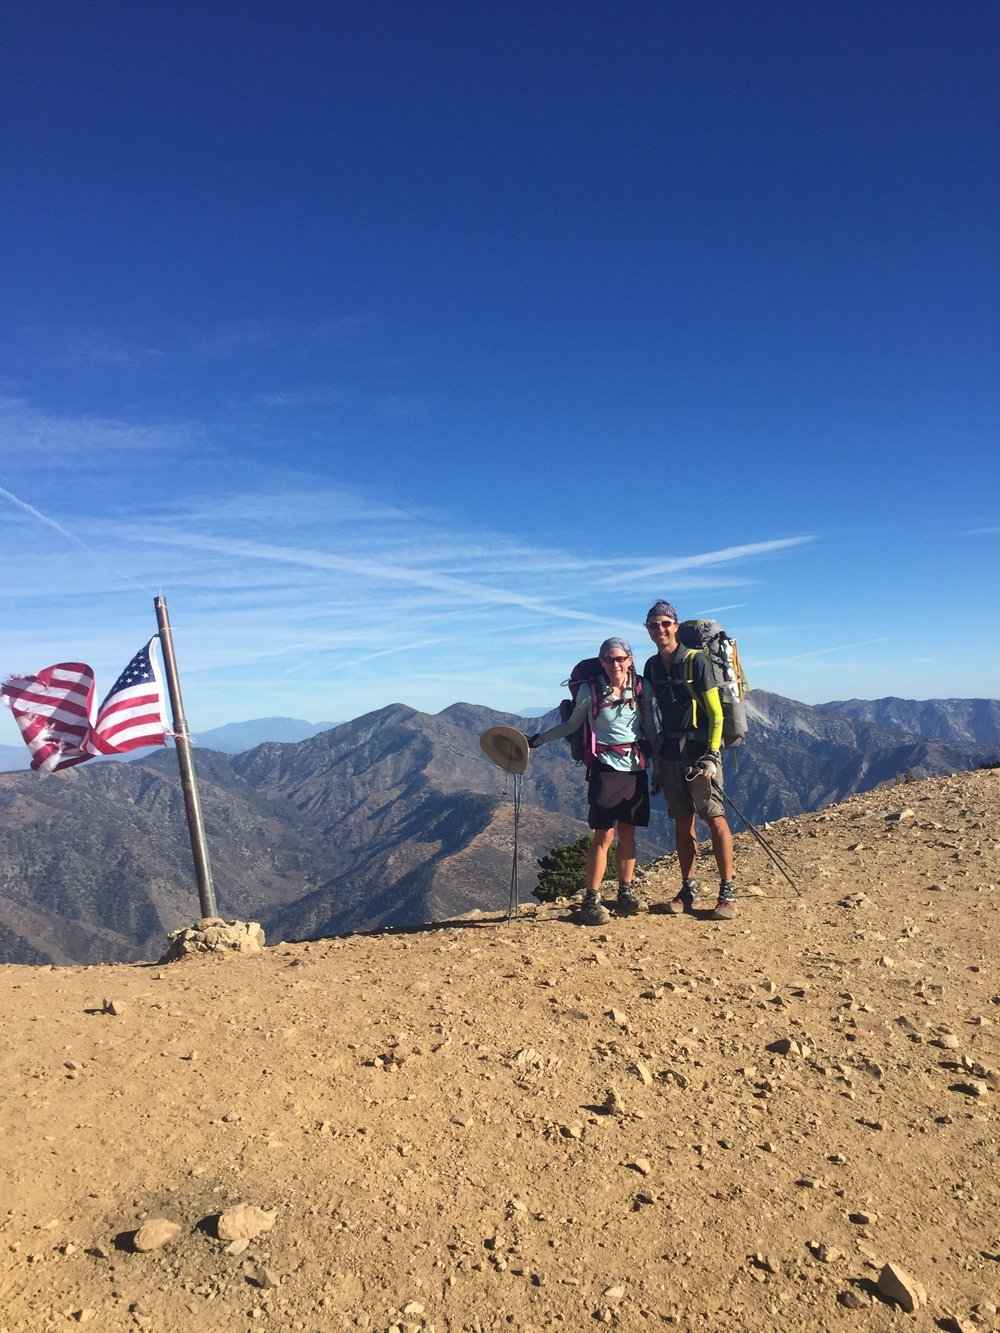 Huckleberry and I on the summit of Mt. Baden-Powell.